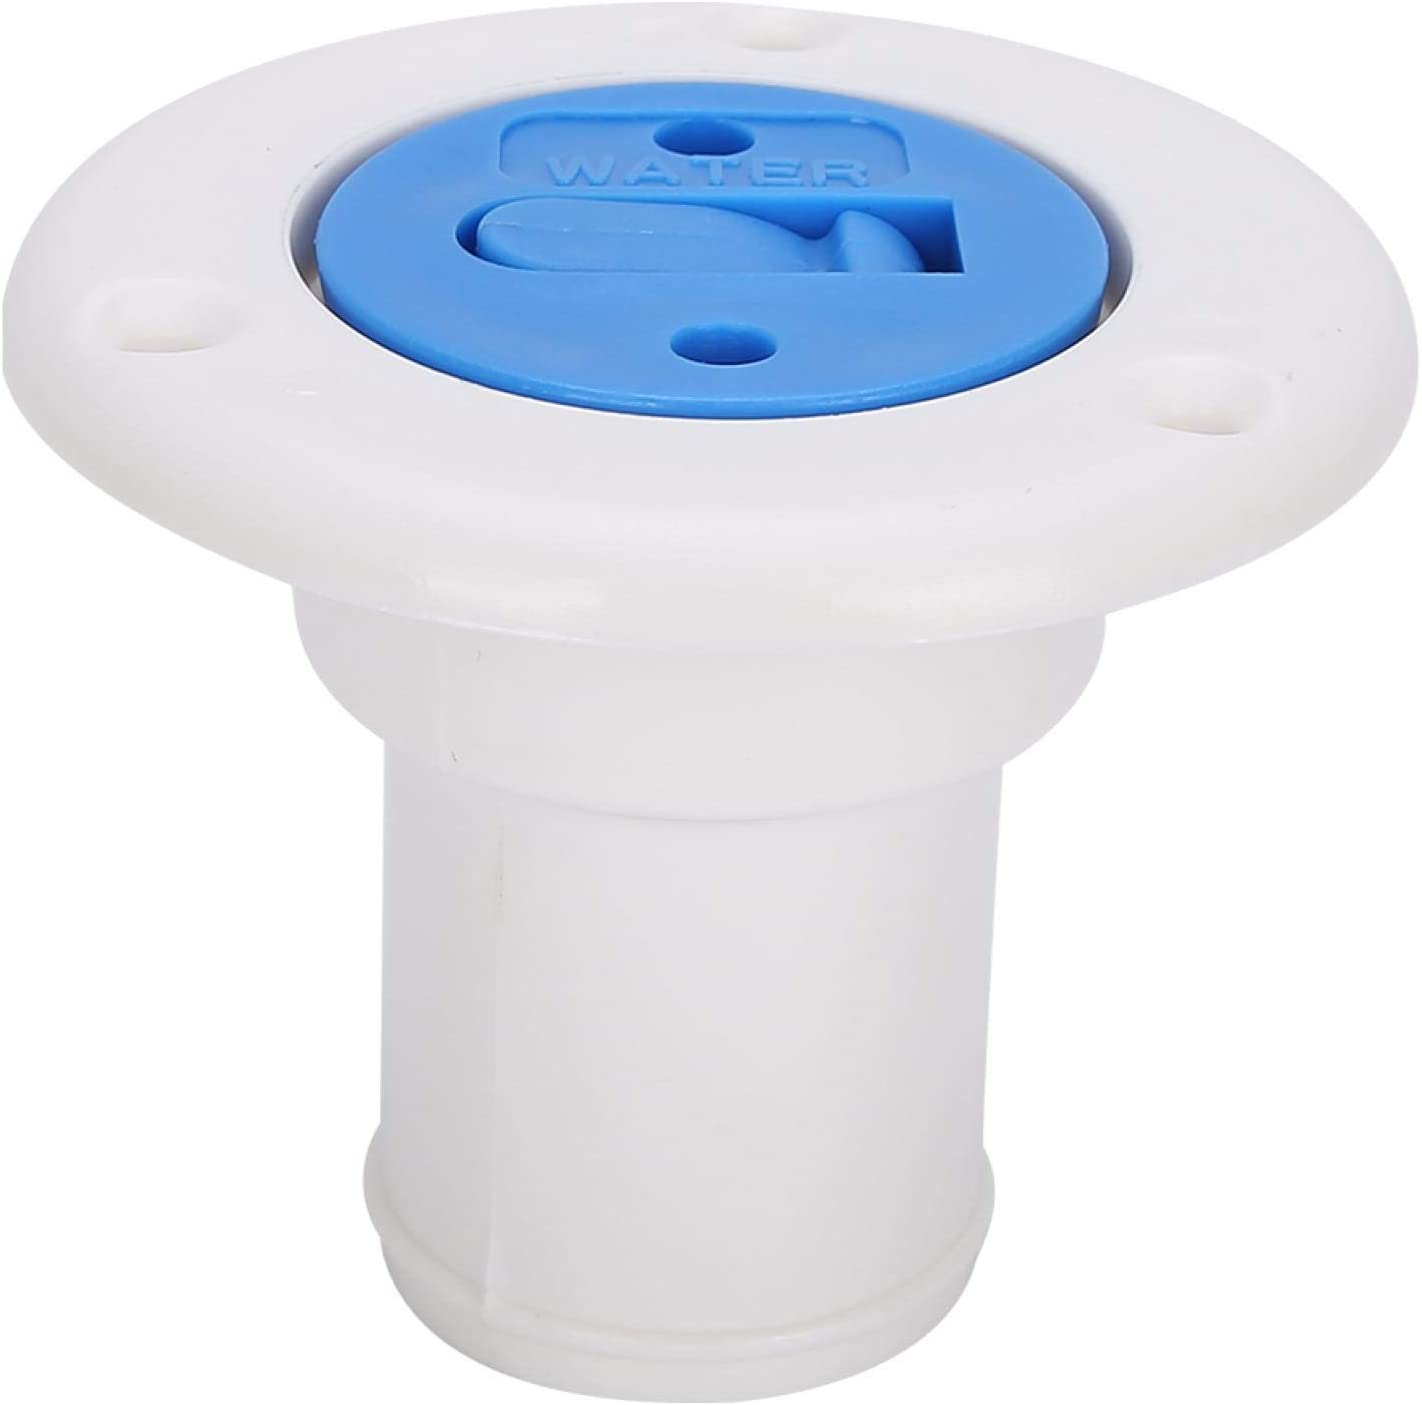 Water Filler Cap Limited price Qiilu F Indianapolis Mall Deck